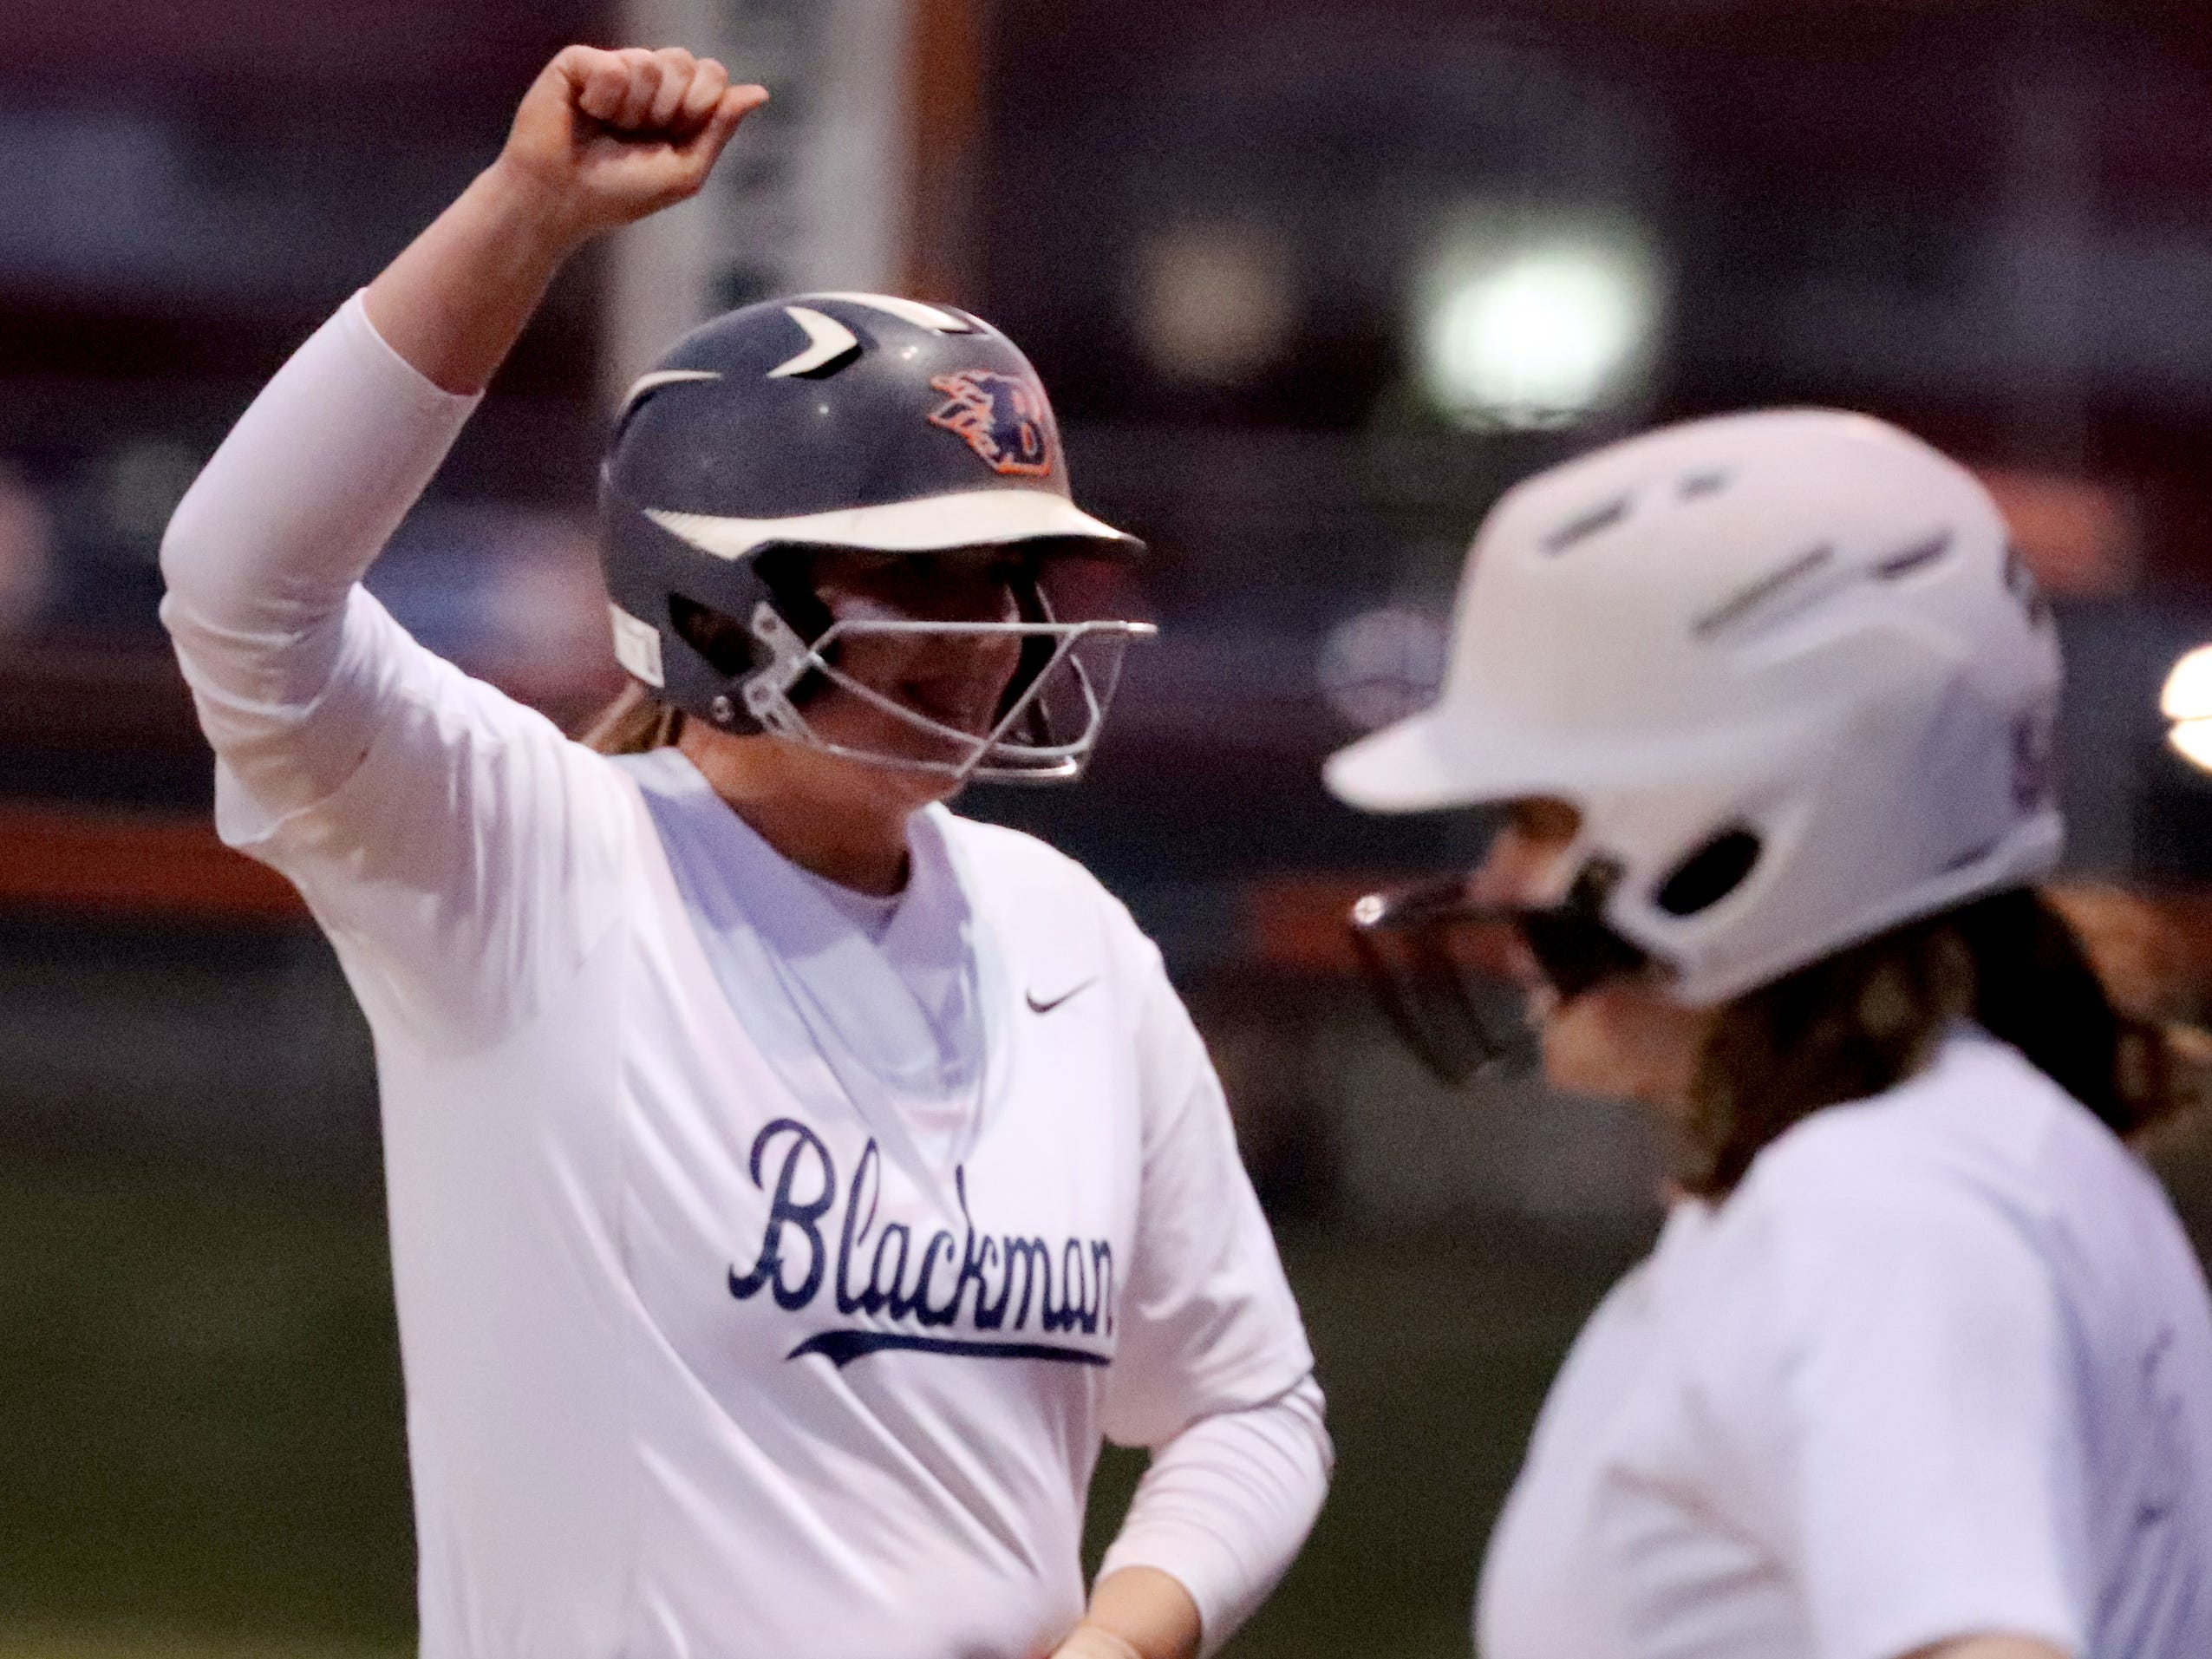 Blackman's Rachel Tarpley (14) celebrates getting on base during the game against Siegel, on Monday, March 18, 2019, at Blackman.